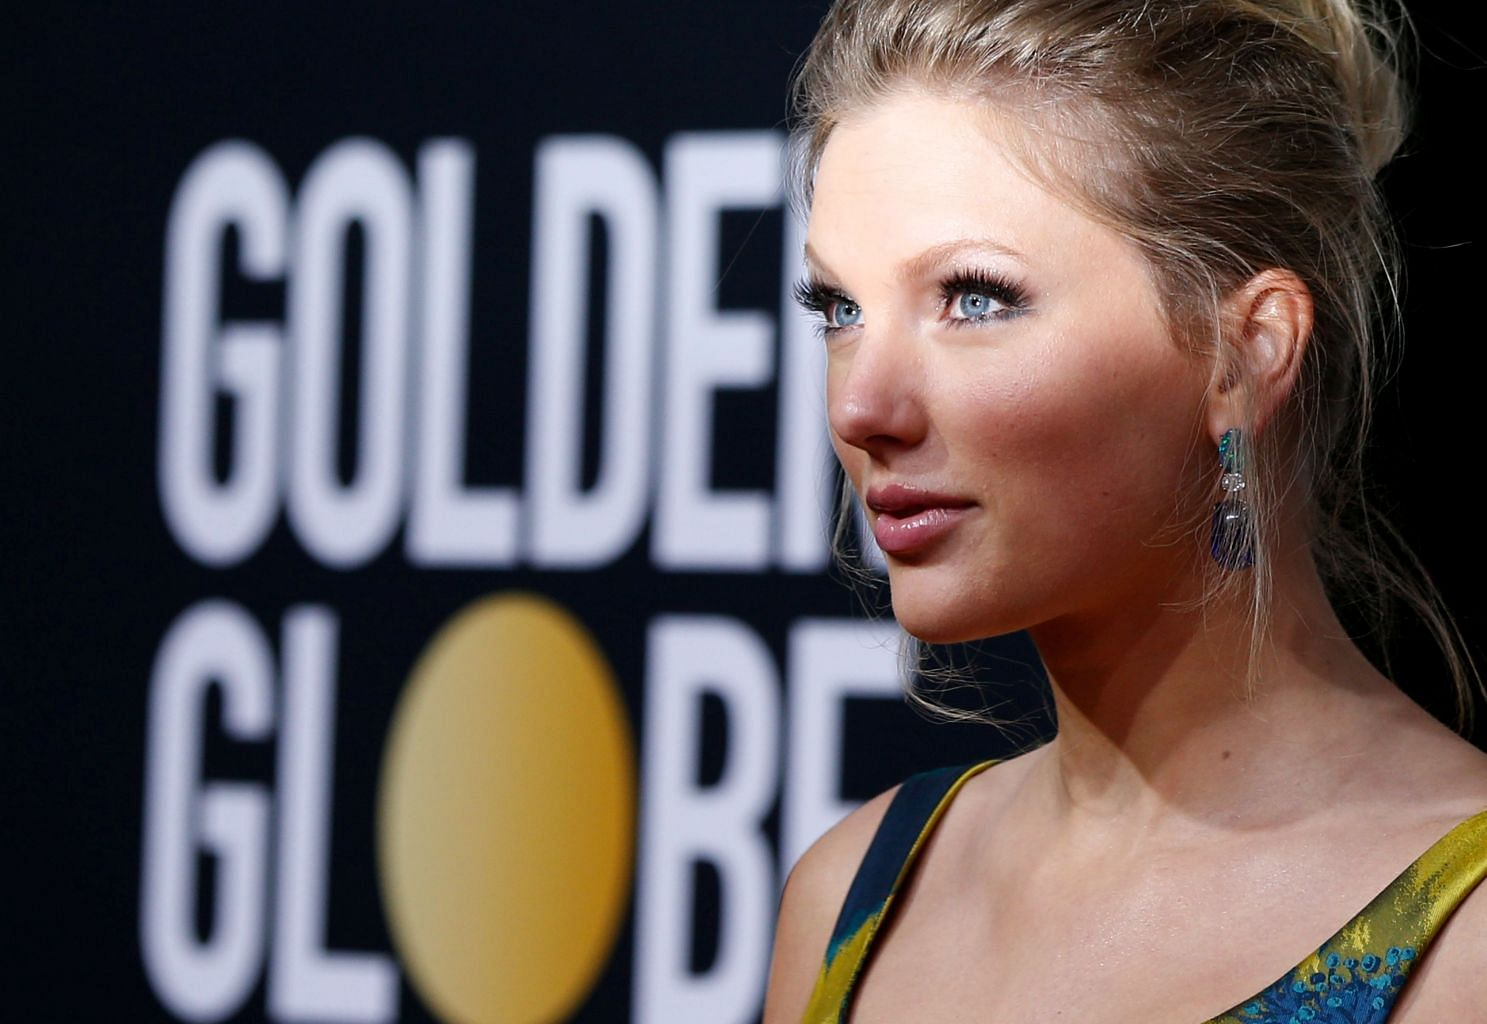 Taylor Swift To Broadcast Special Paris Concert Entertainment News Top Stories The Straits Times